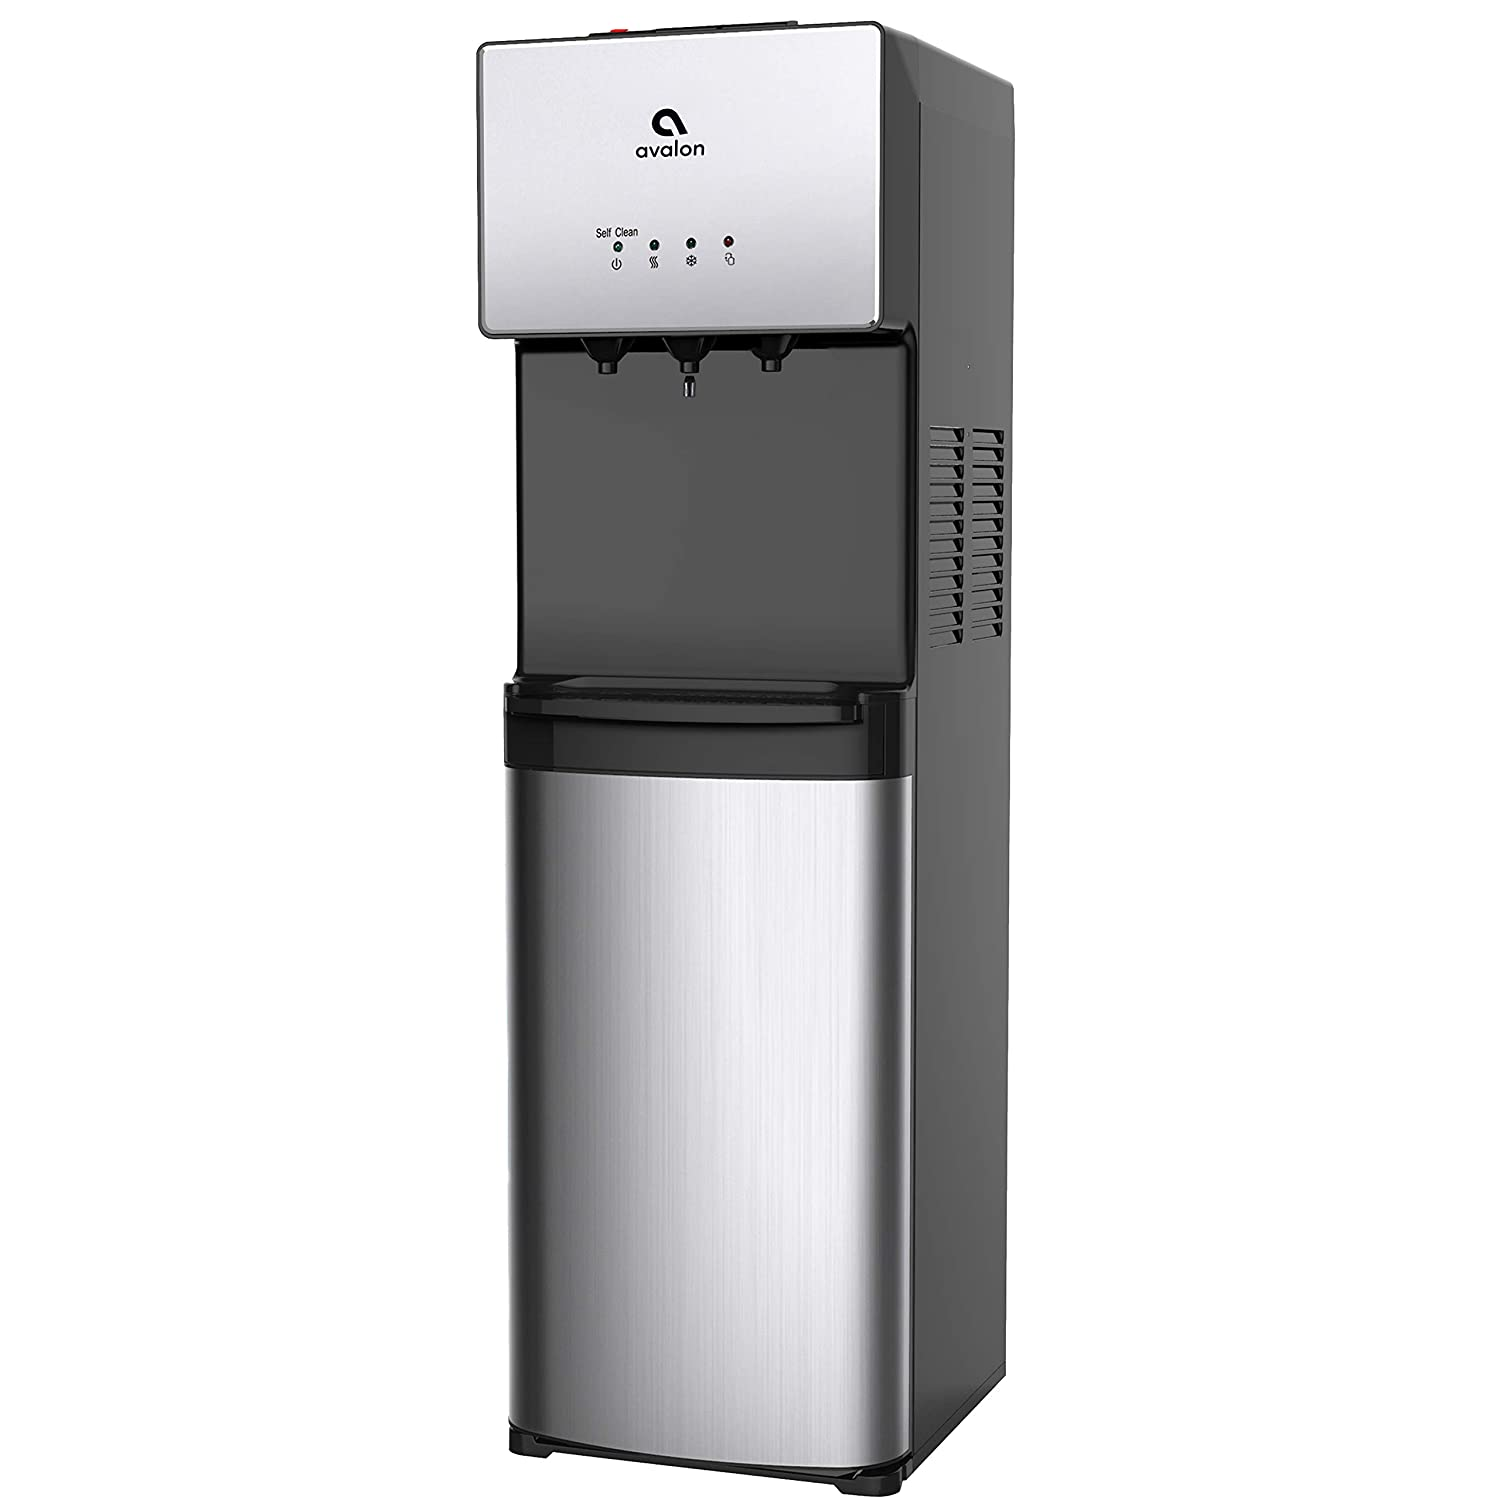 Avalon Limited Edition Self Cleaning Water Cooler Water Dispenser Black Friday Deals